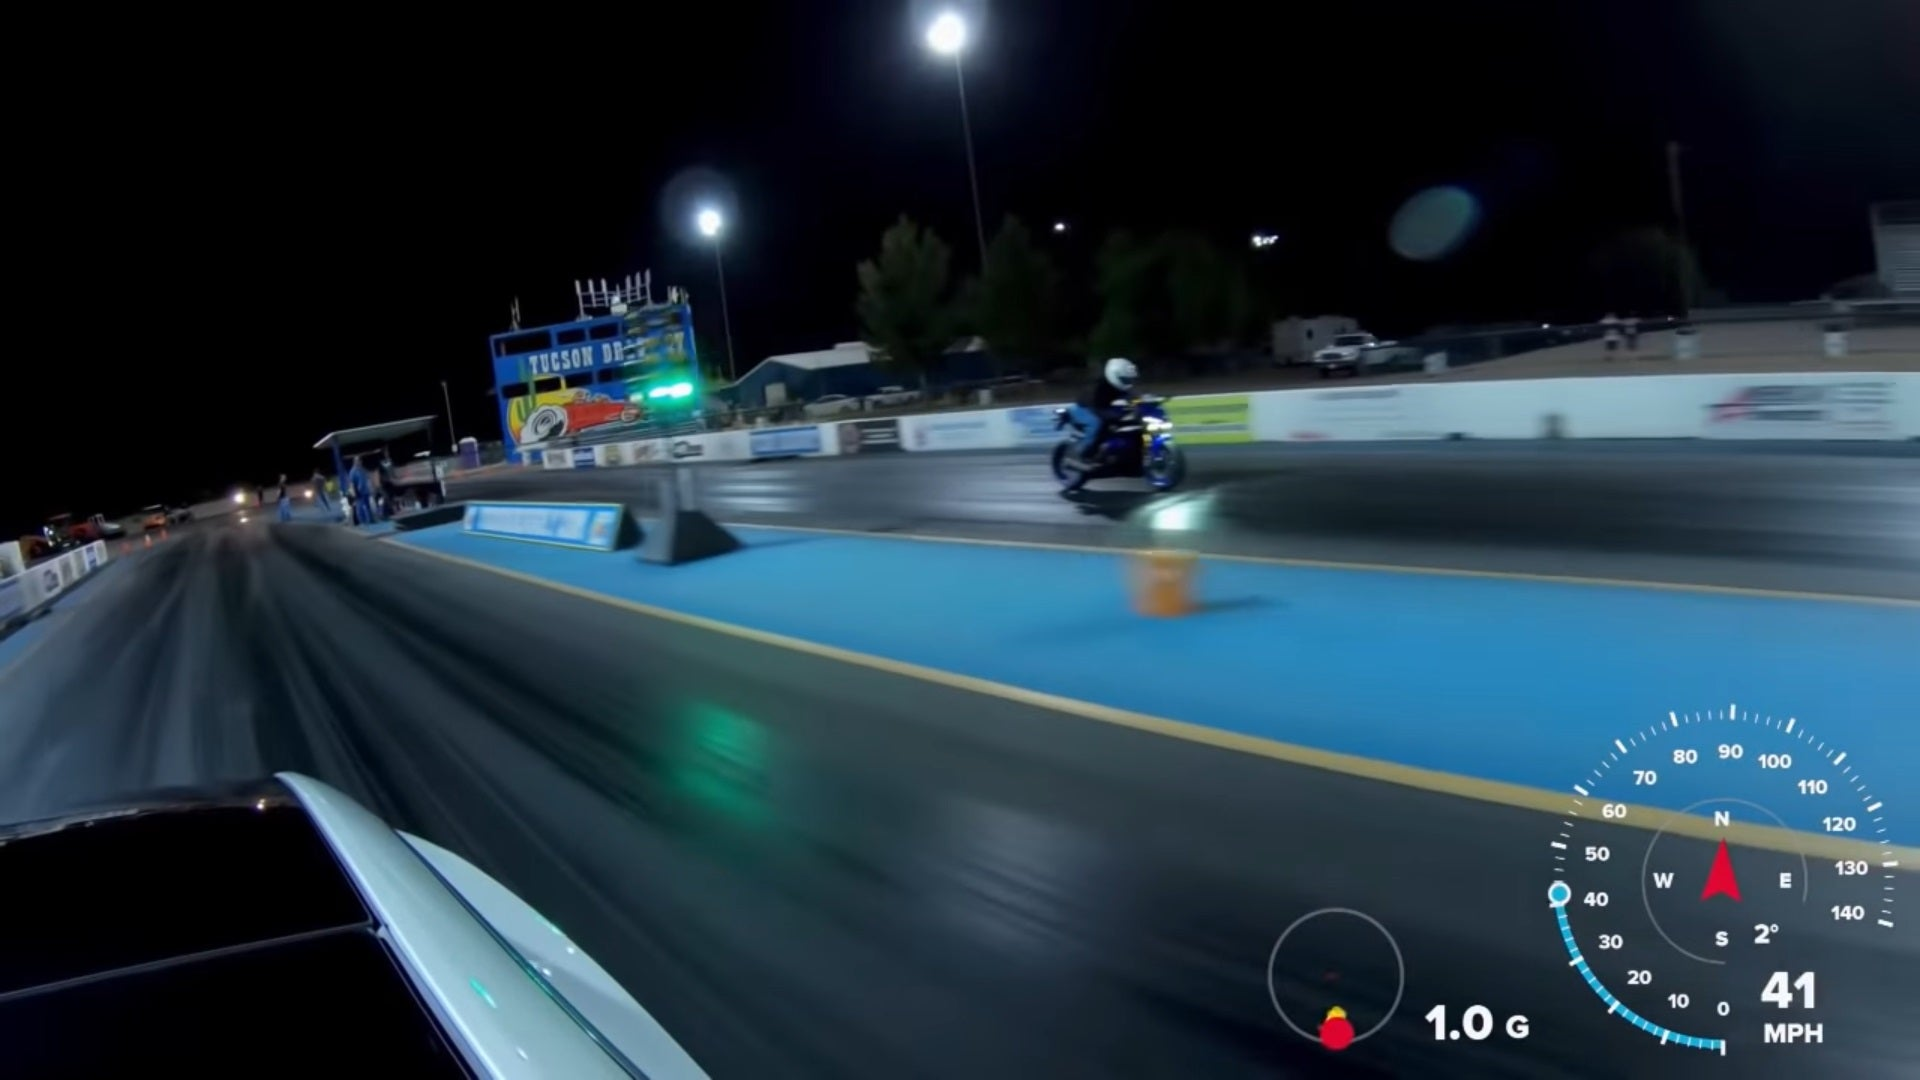 Tesla Model 3 Performance Upsets Yamaha R6 in Quarter Mile